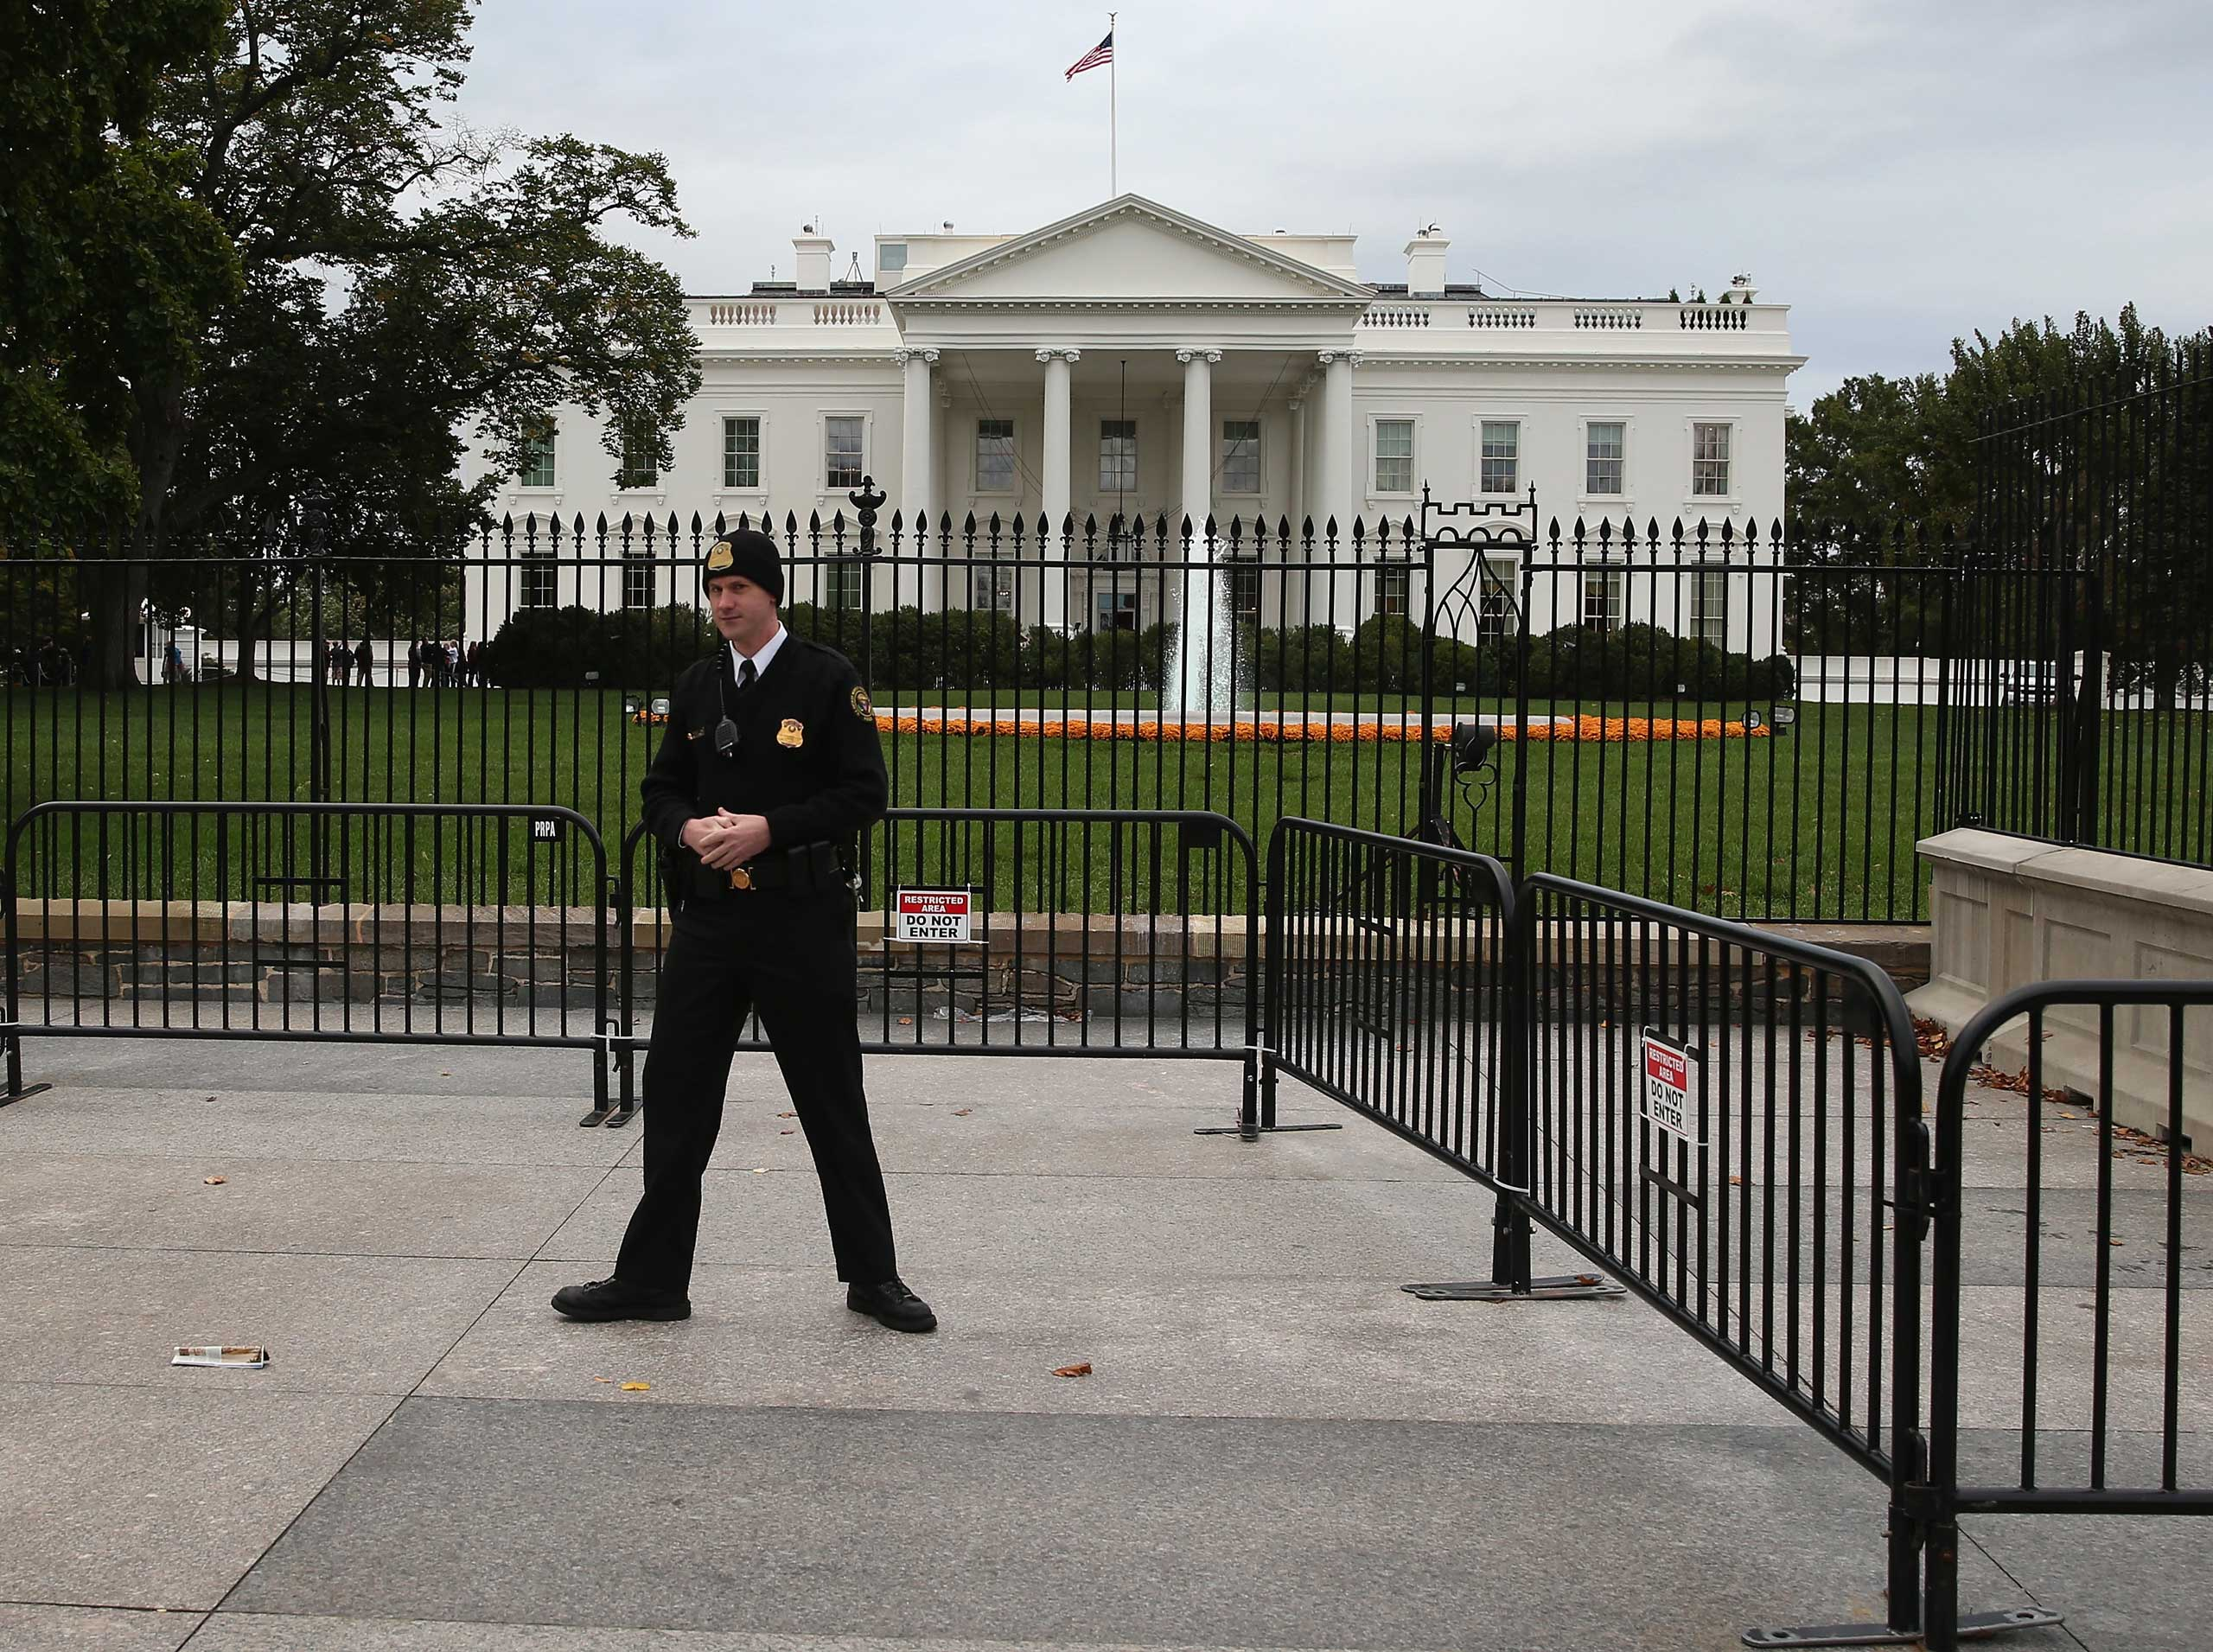 A member of the US Secret Service stands guard in front of the White House in Washington on Oct. 23, 2014.